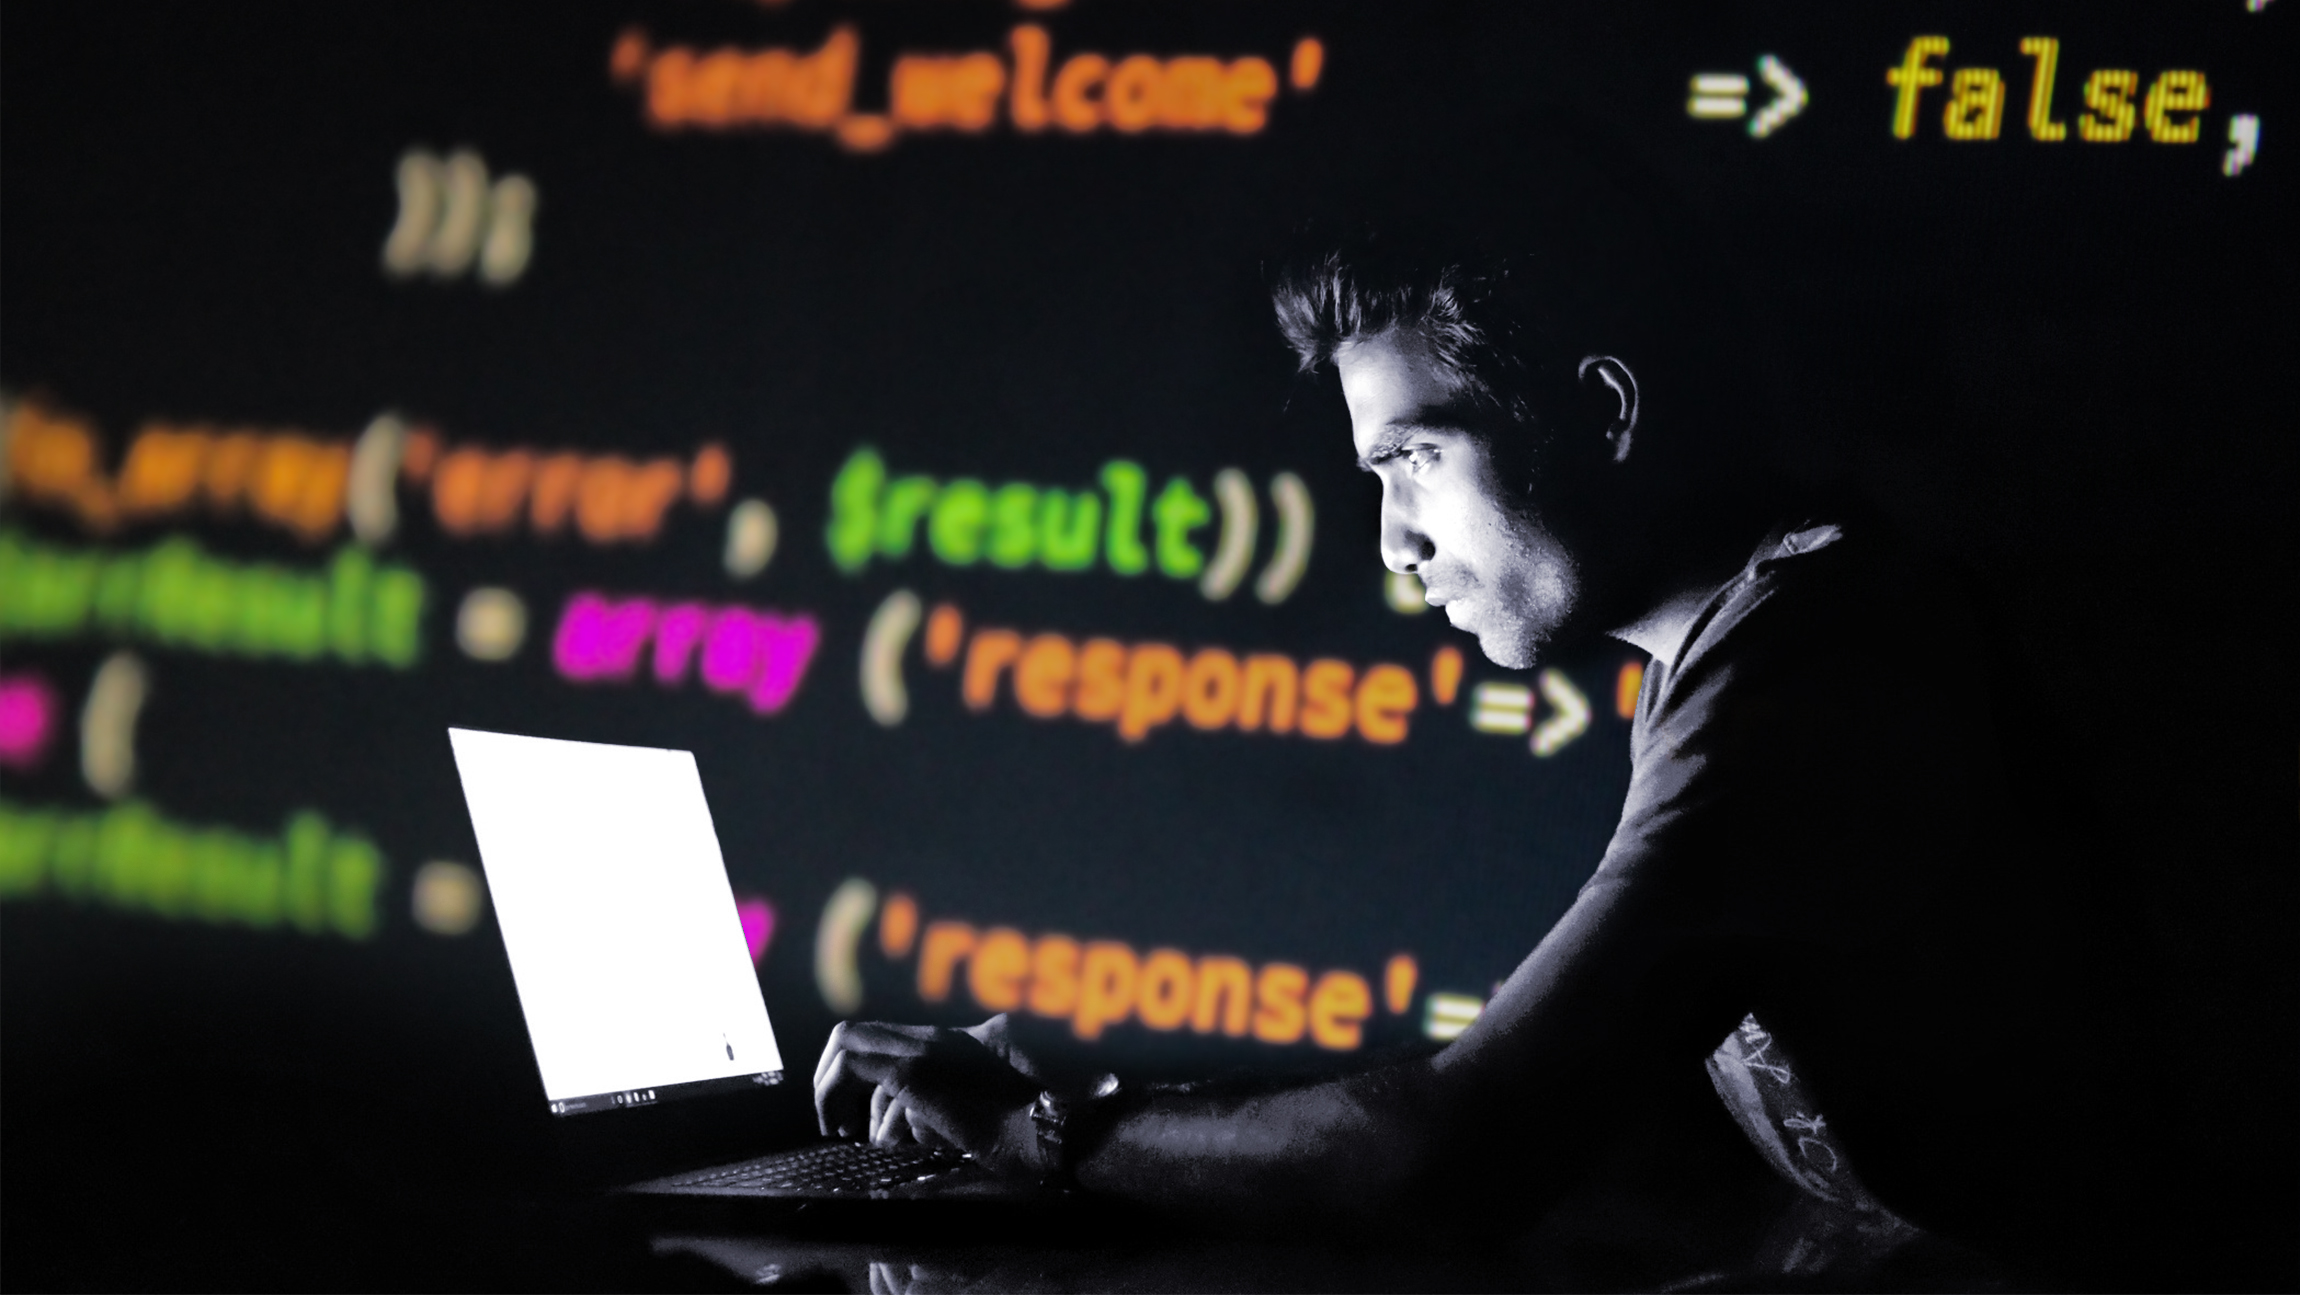 Image of a hacker in a dark room. Code is displayed in the background.